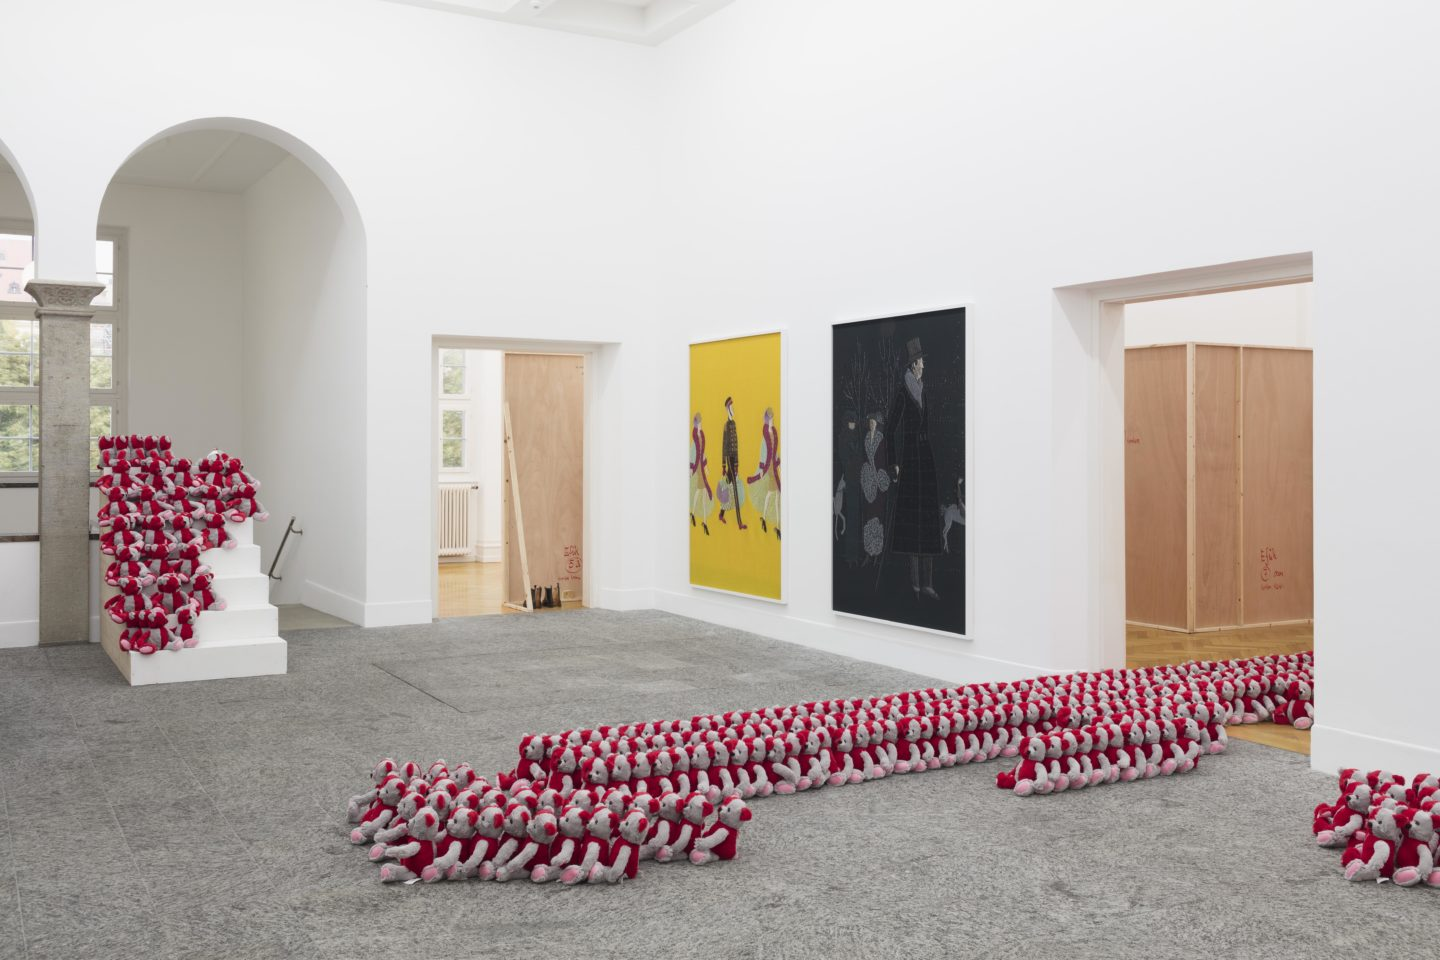 Exhibition View Tobias Kaspar «Independence» at Kunsthalle Bern, 2018 / Photo: Gunnar Meier / Courtesy: the artist and Kunsthalle Bern